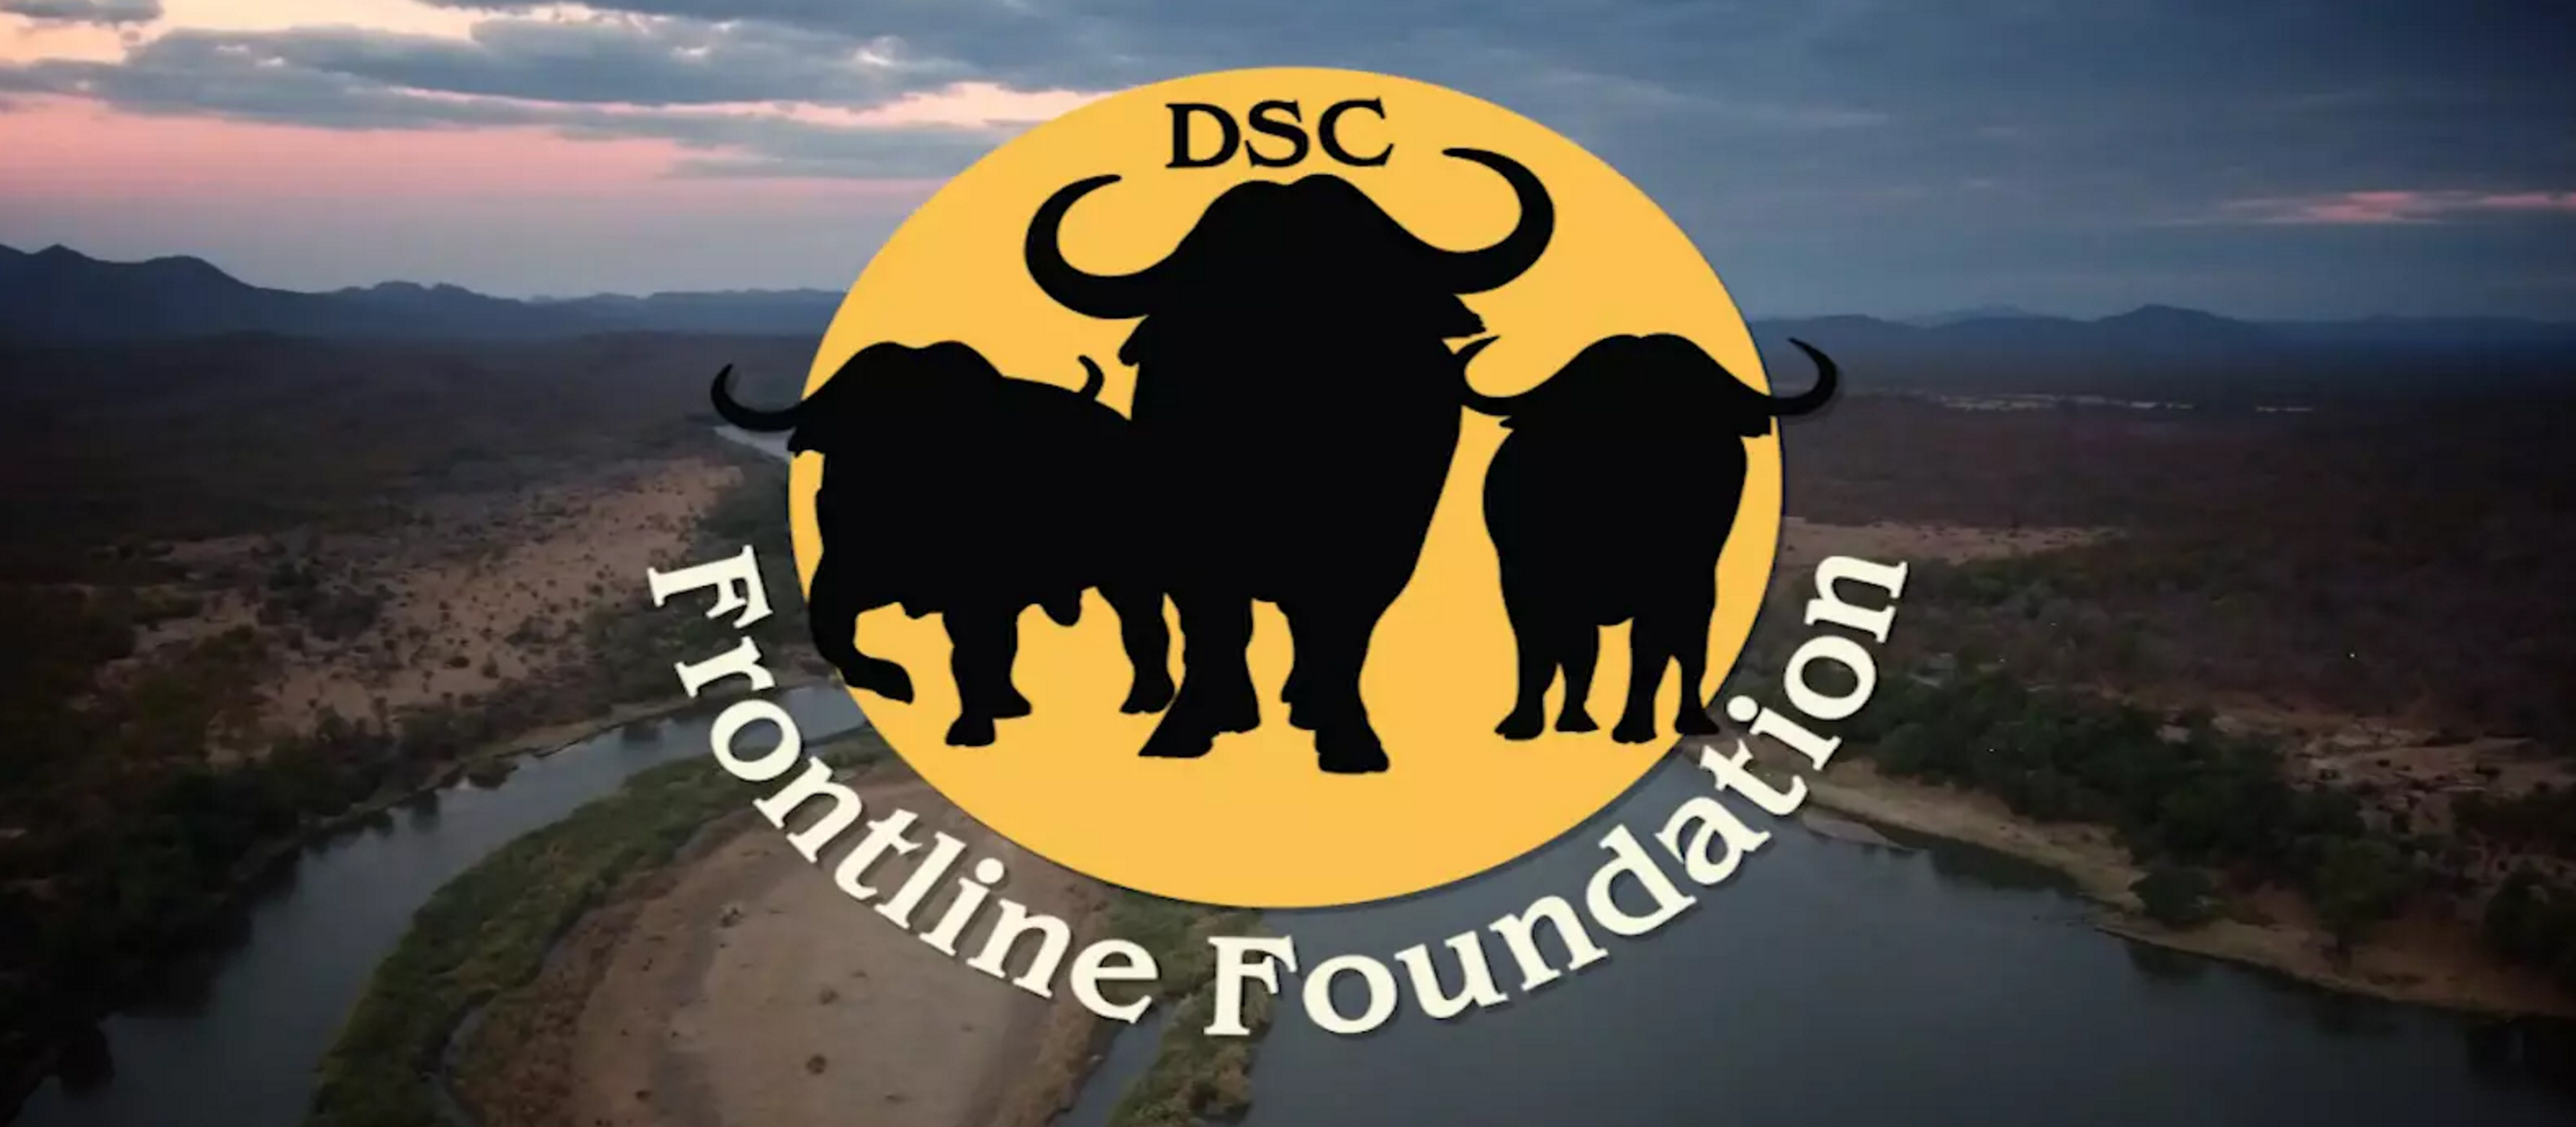 DSC Frontline Foundation Grant Helps Injured African Hunting Guide